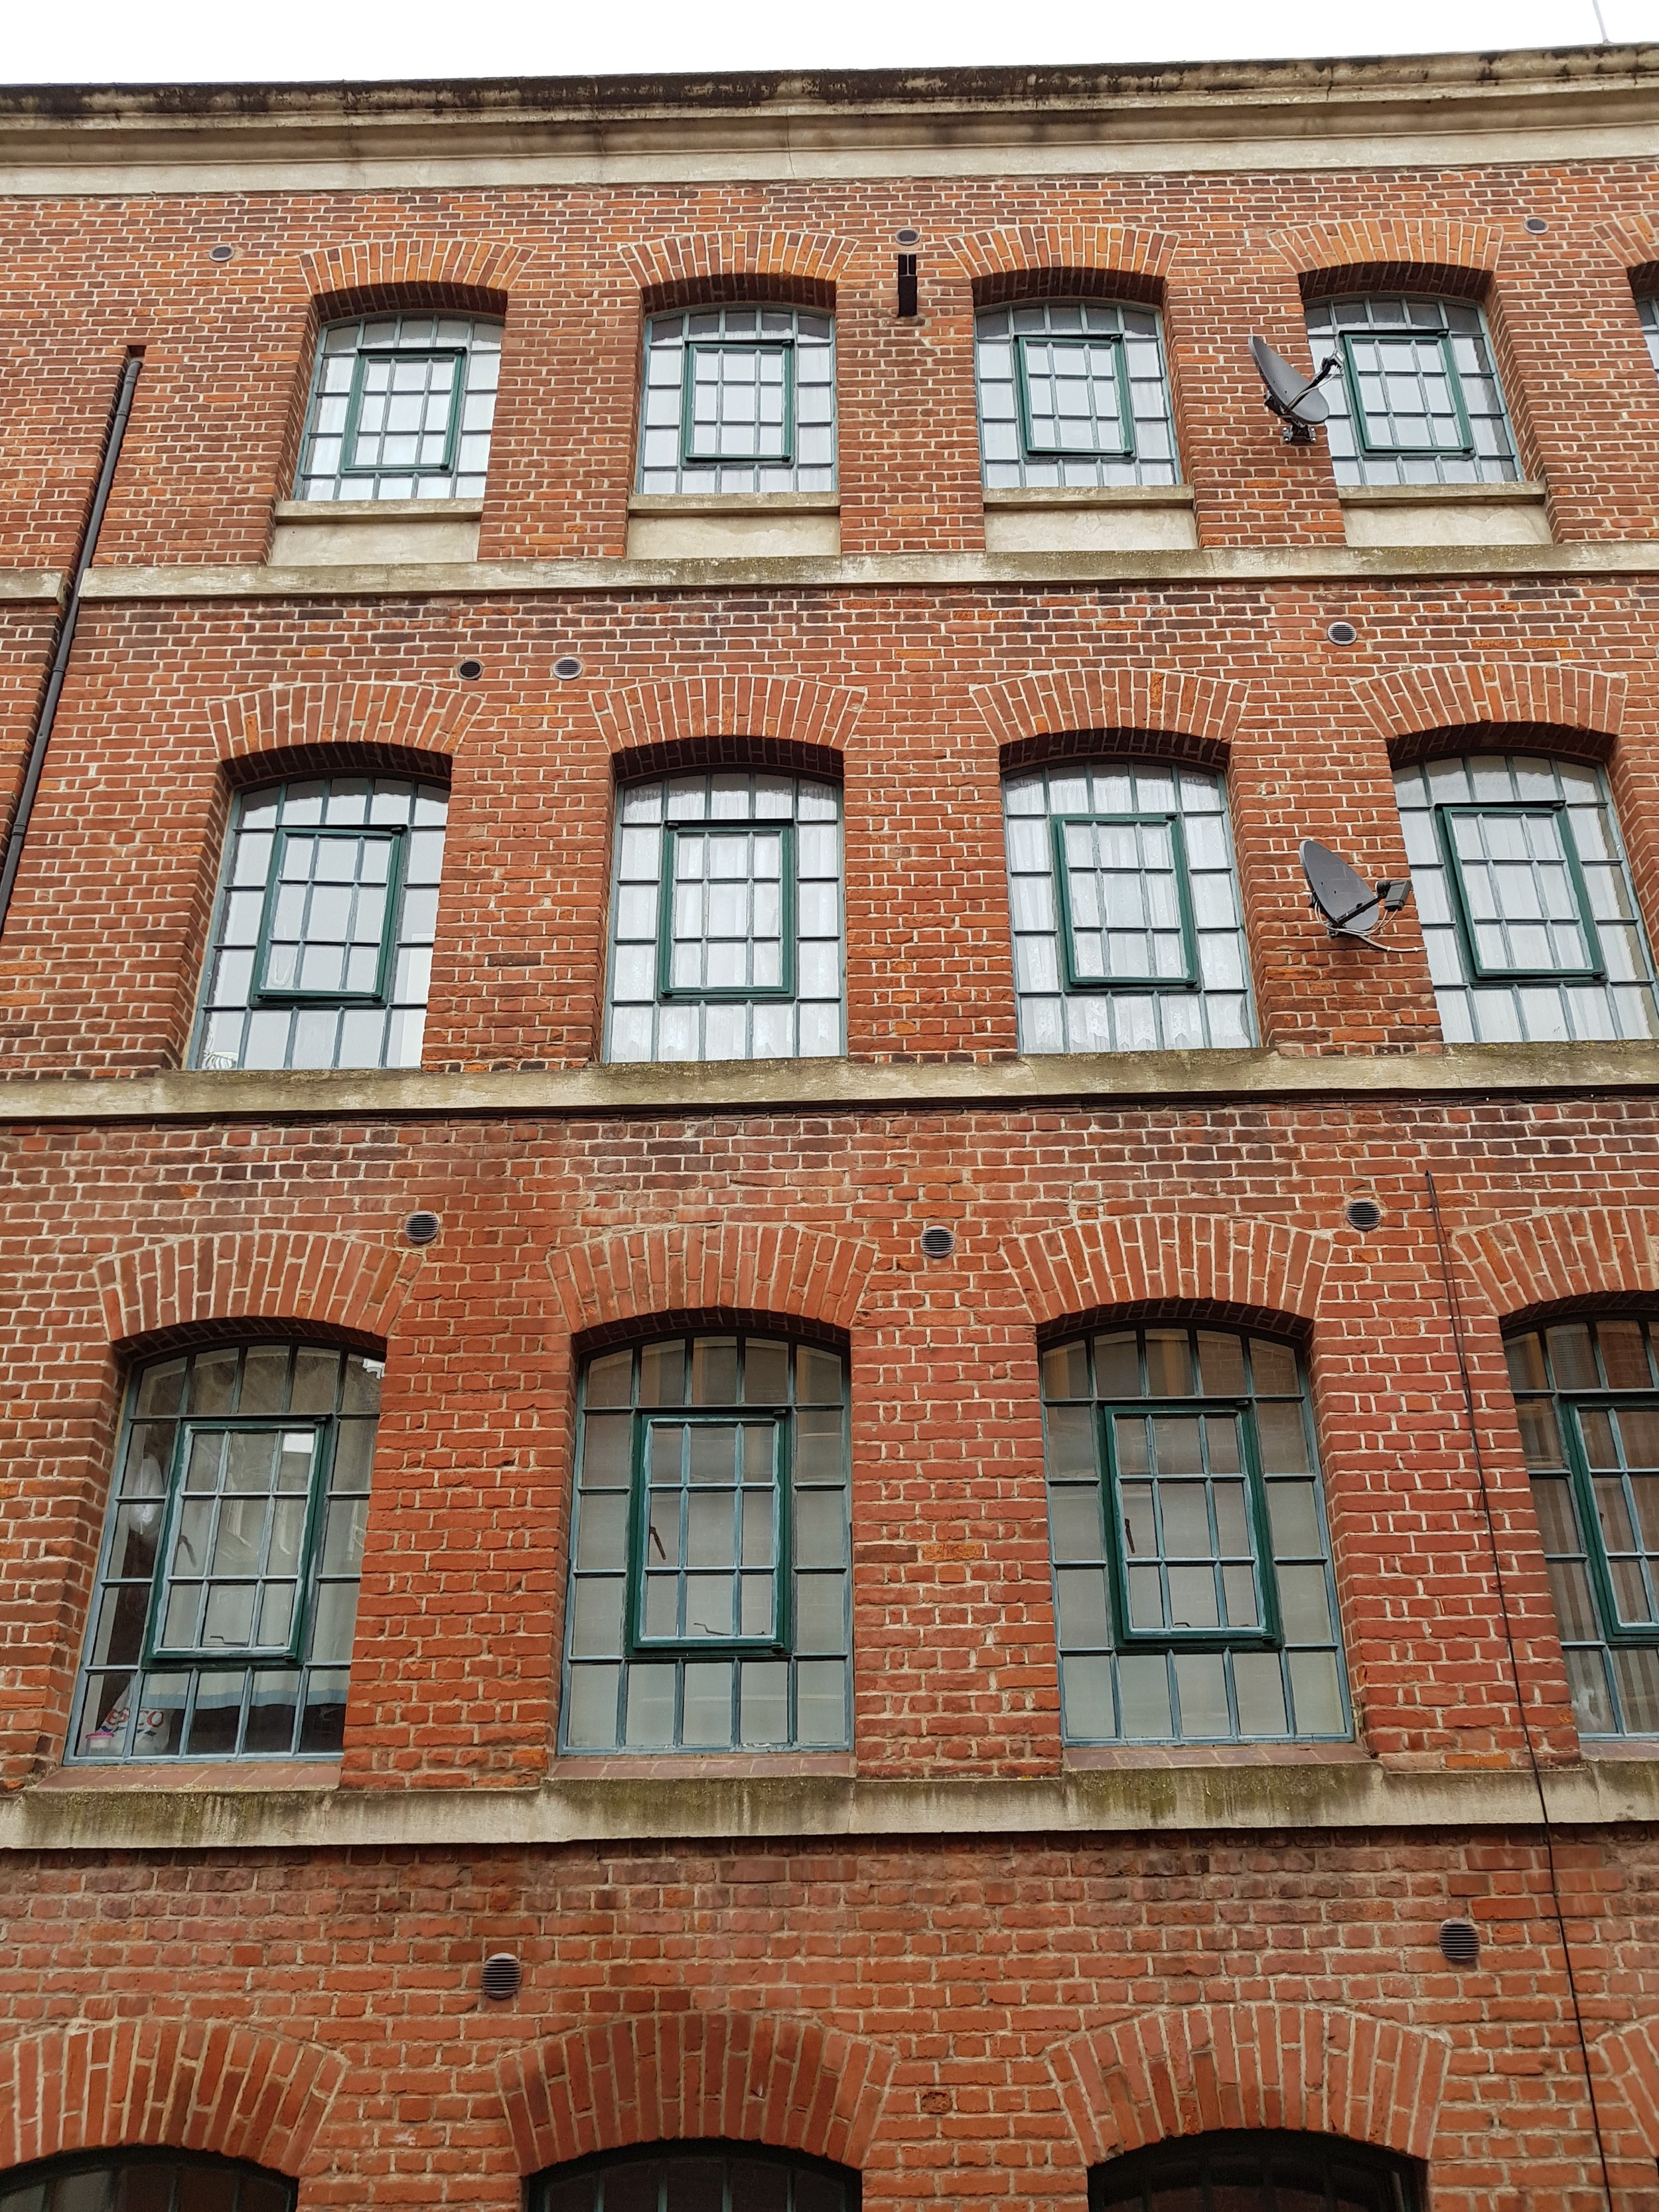 Warehouse - storeys high-lighted with continuous stone articulation -